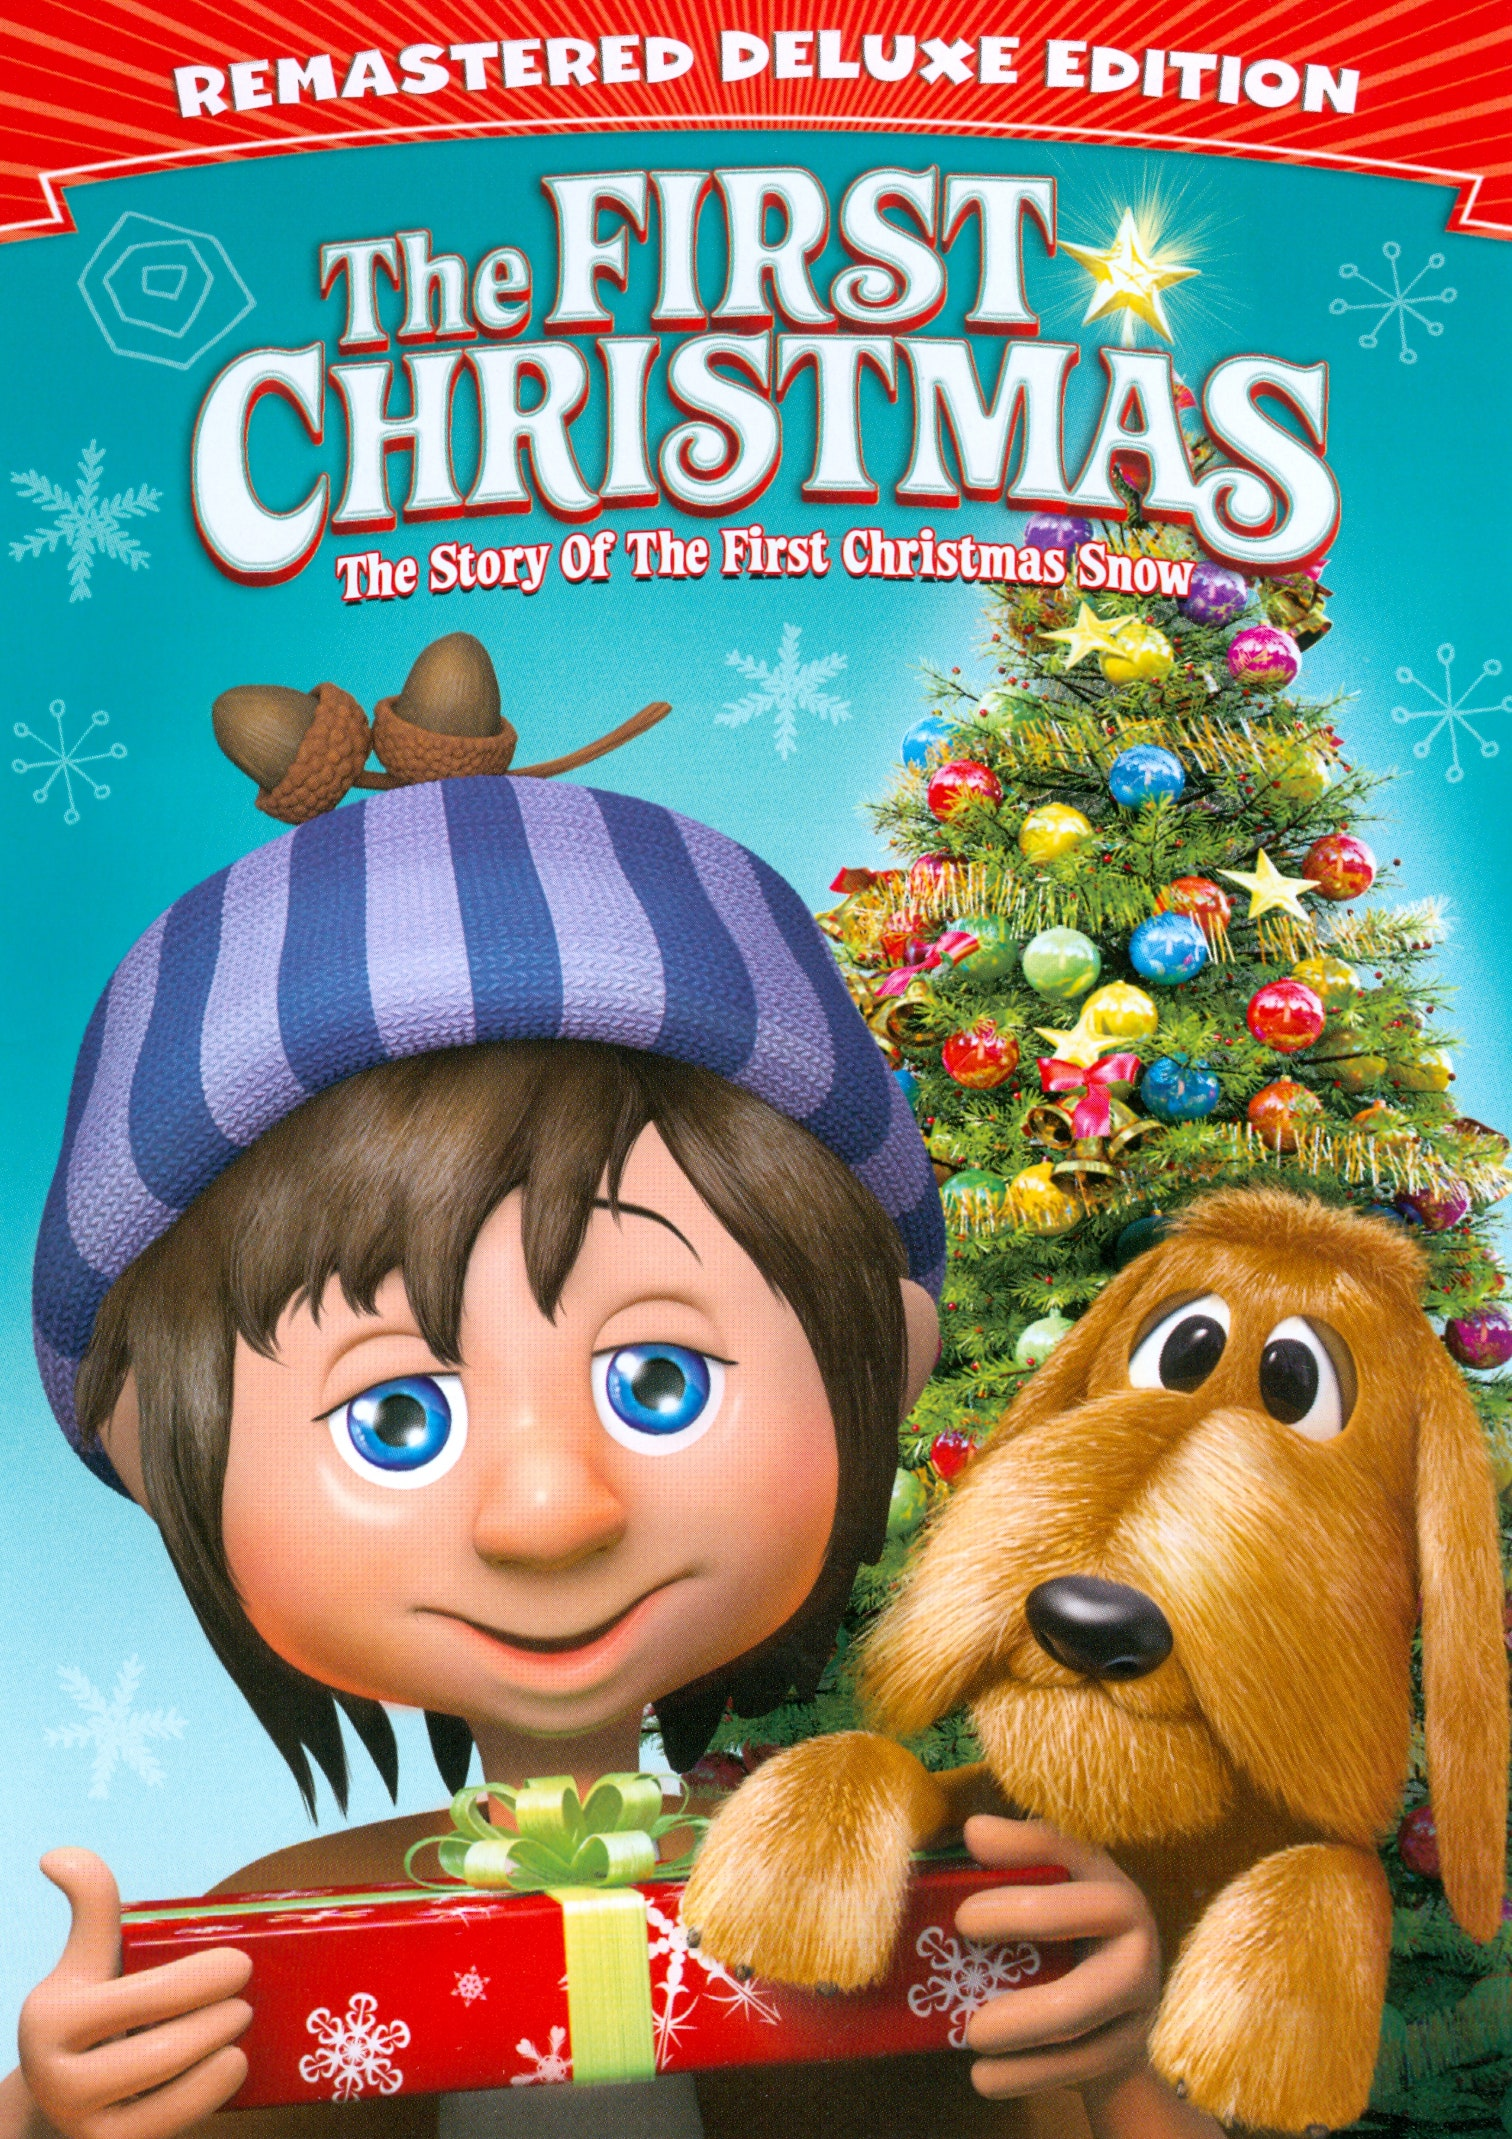 The First ChristmasThe Story of the First Christmas Snow